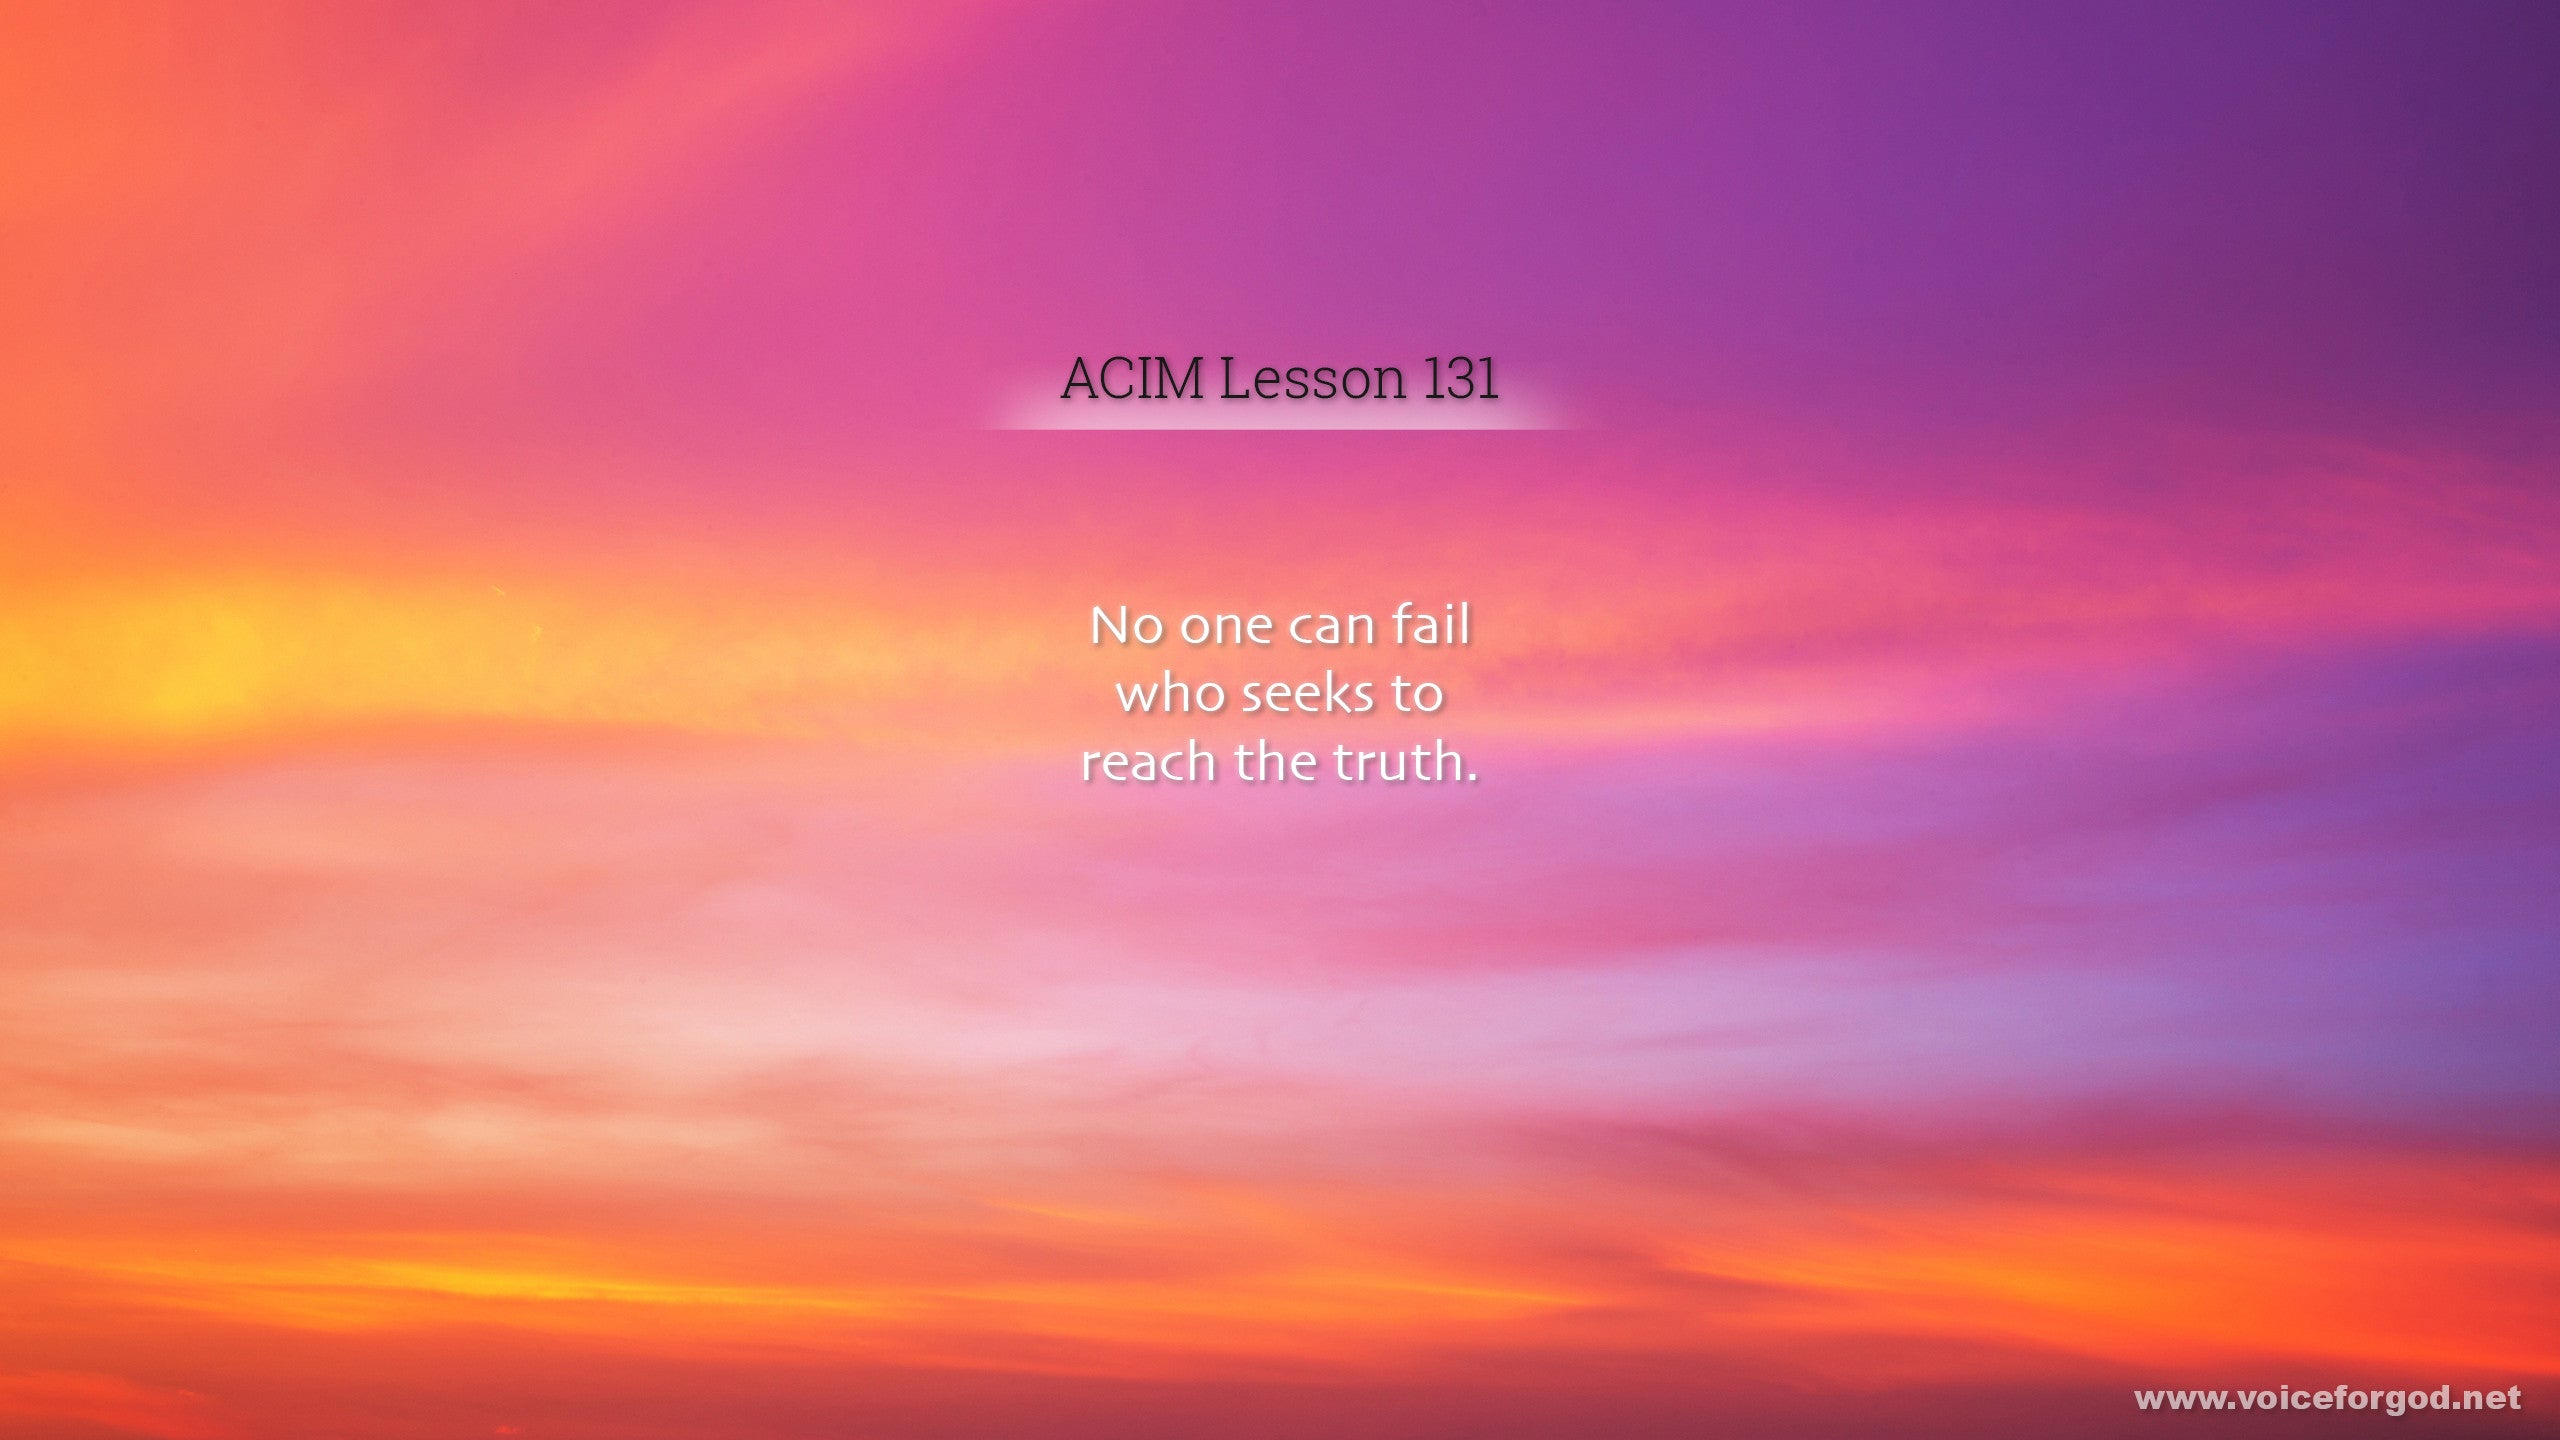 ACIM Lesson 131 - A Course in Miracles Workbook Lesson 131